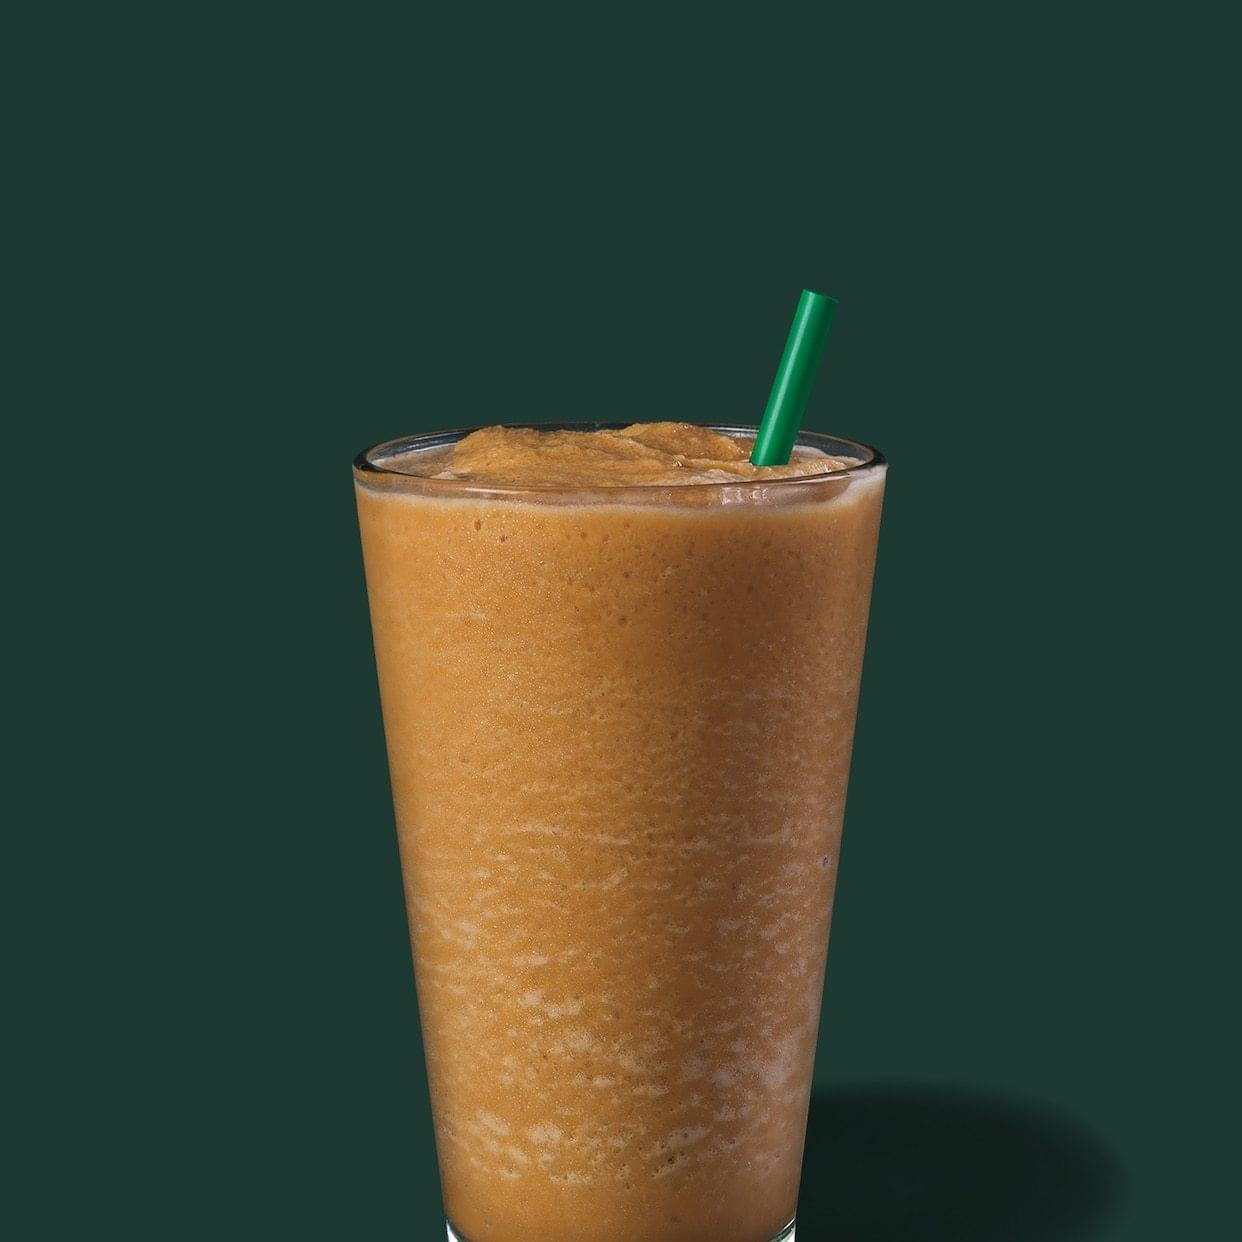 Starbucks Tall Espresso Frappuccino Nutrition Facts